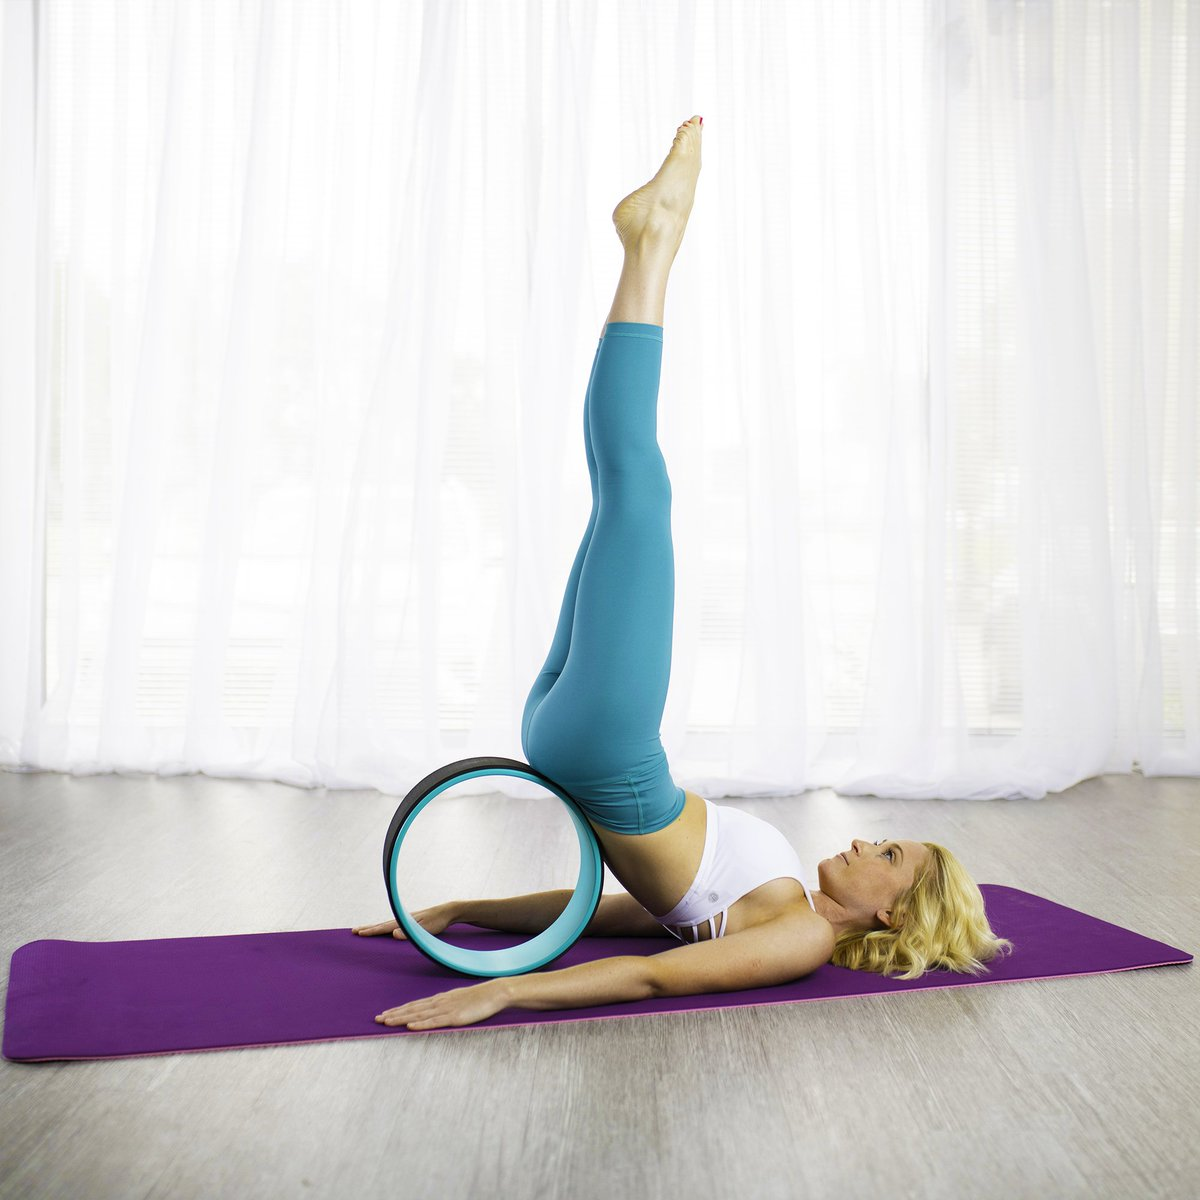 Nature S Integrity On Twitter I Am Always Working On My Shoulder Stands And Headstands The Yoga Wheel Is The Best Yoga Prop I Have Found To Truly Support Me In These Poses